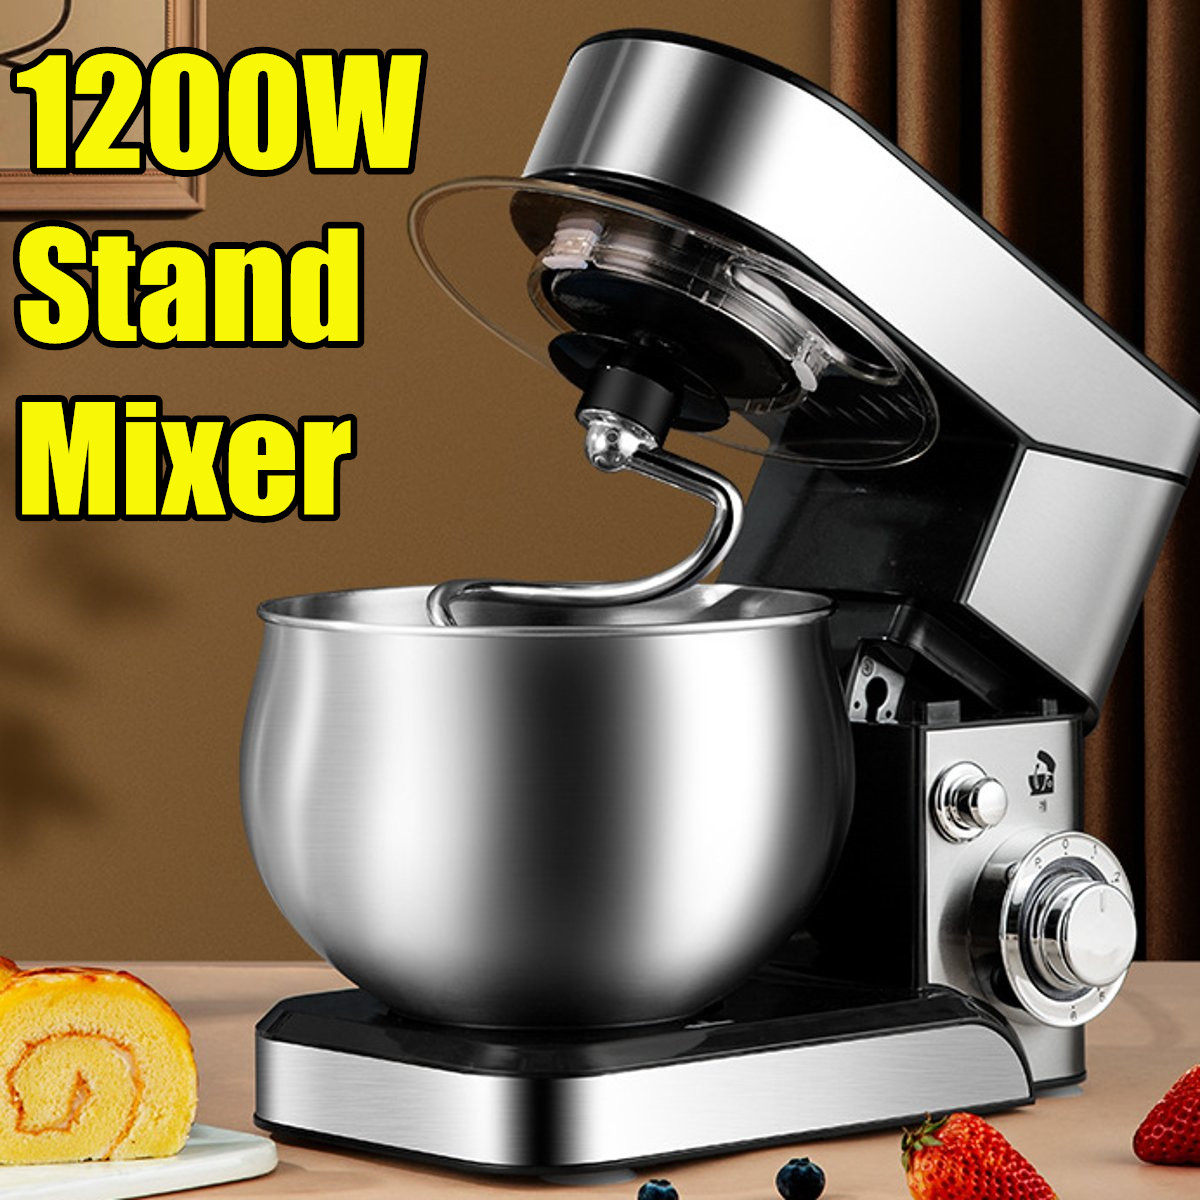 1200W 5L Kitchen Food Stand Mixer 6-speed Stainless Steel Bowl Home Cream Egg Whisk Blender Cake Dough Bread Mixer Maker Machine